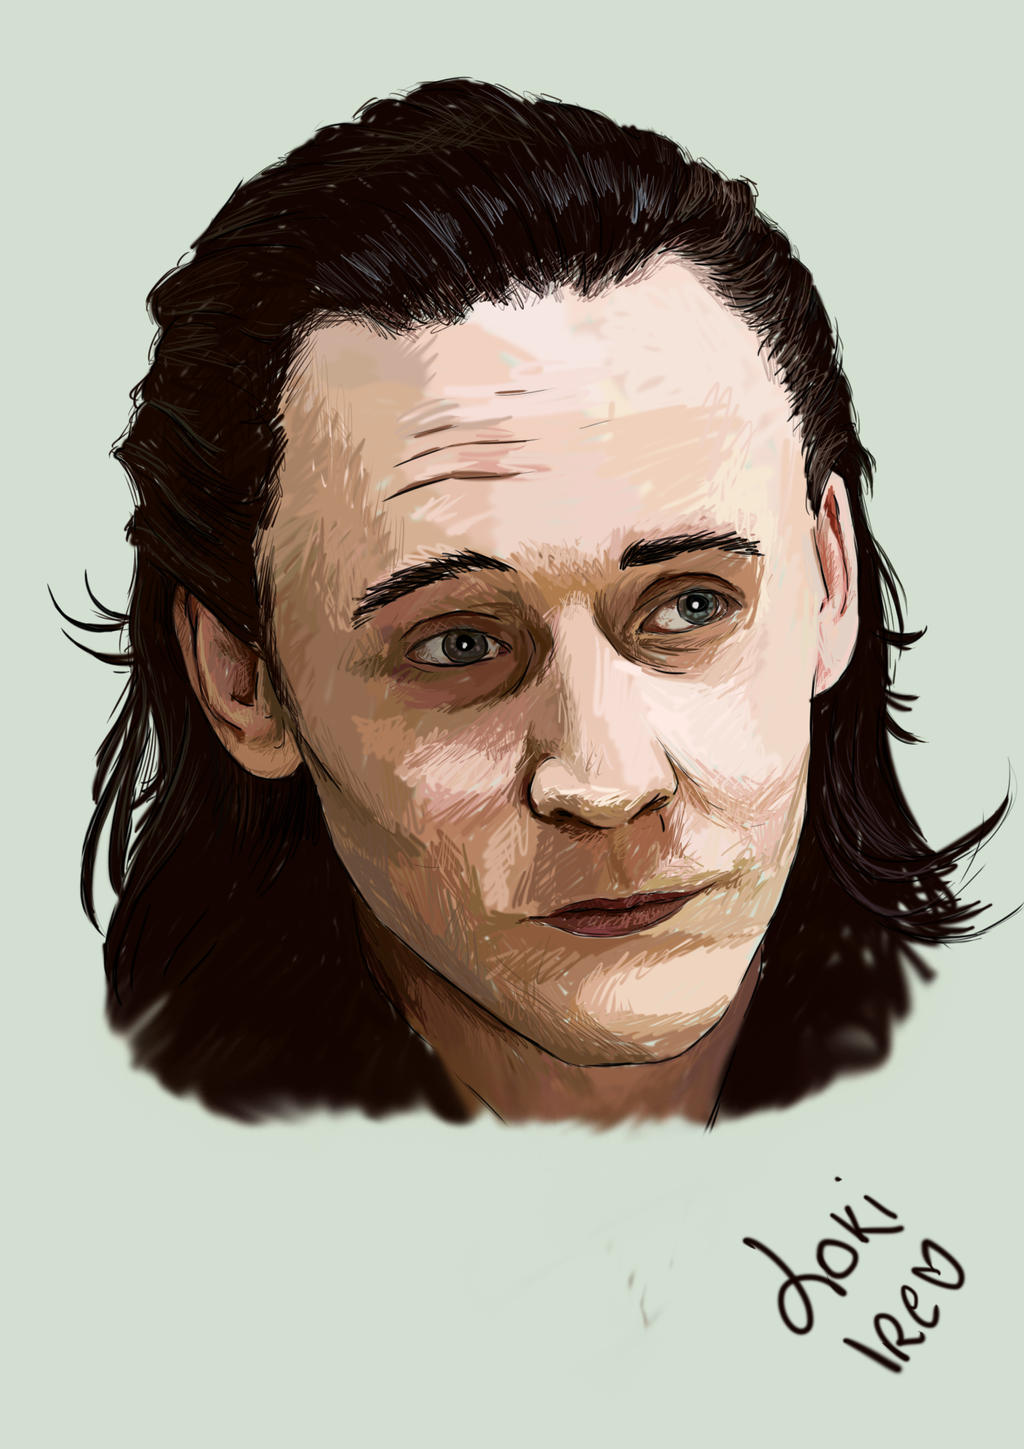 Loki_Tom Hiddleston by pizzaplanet